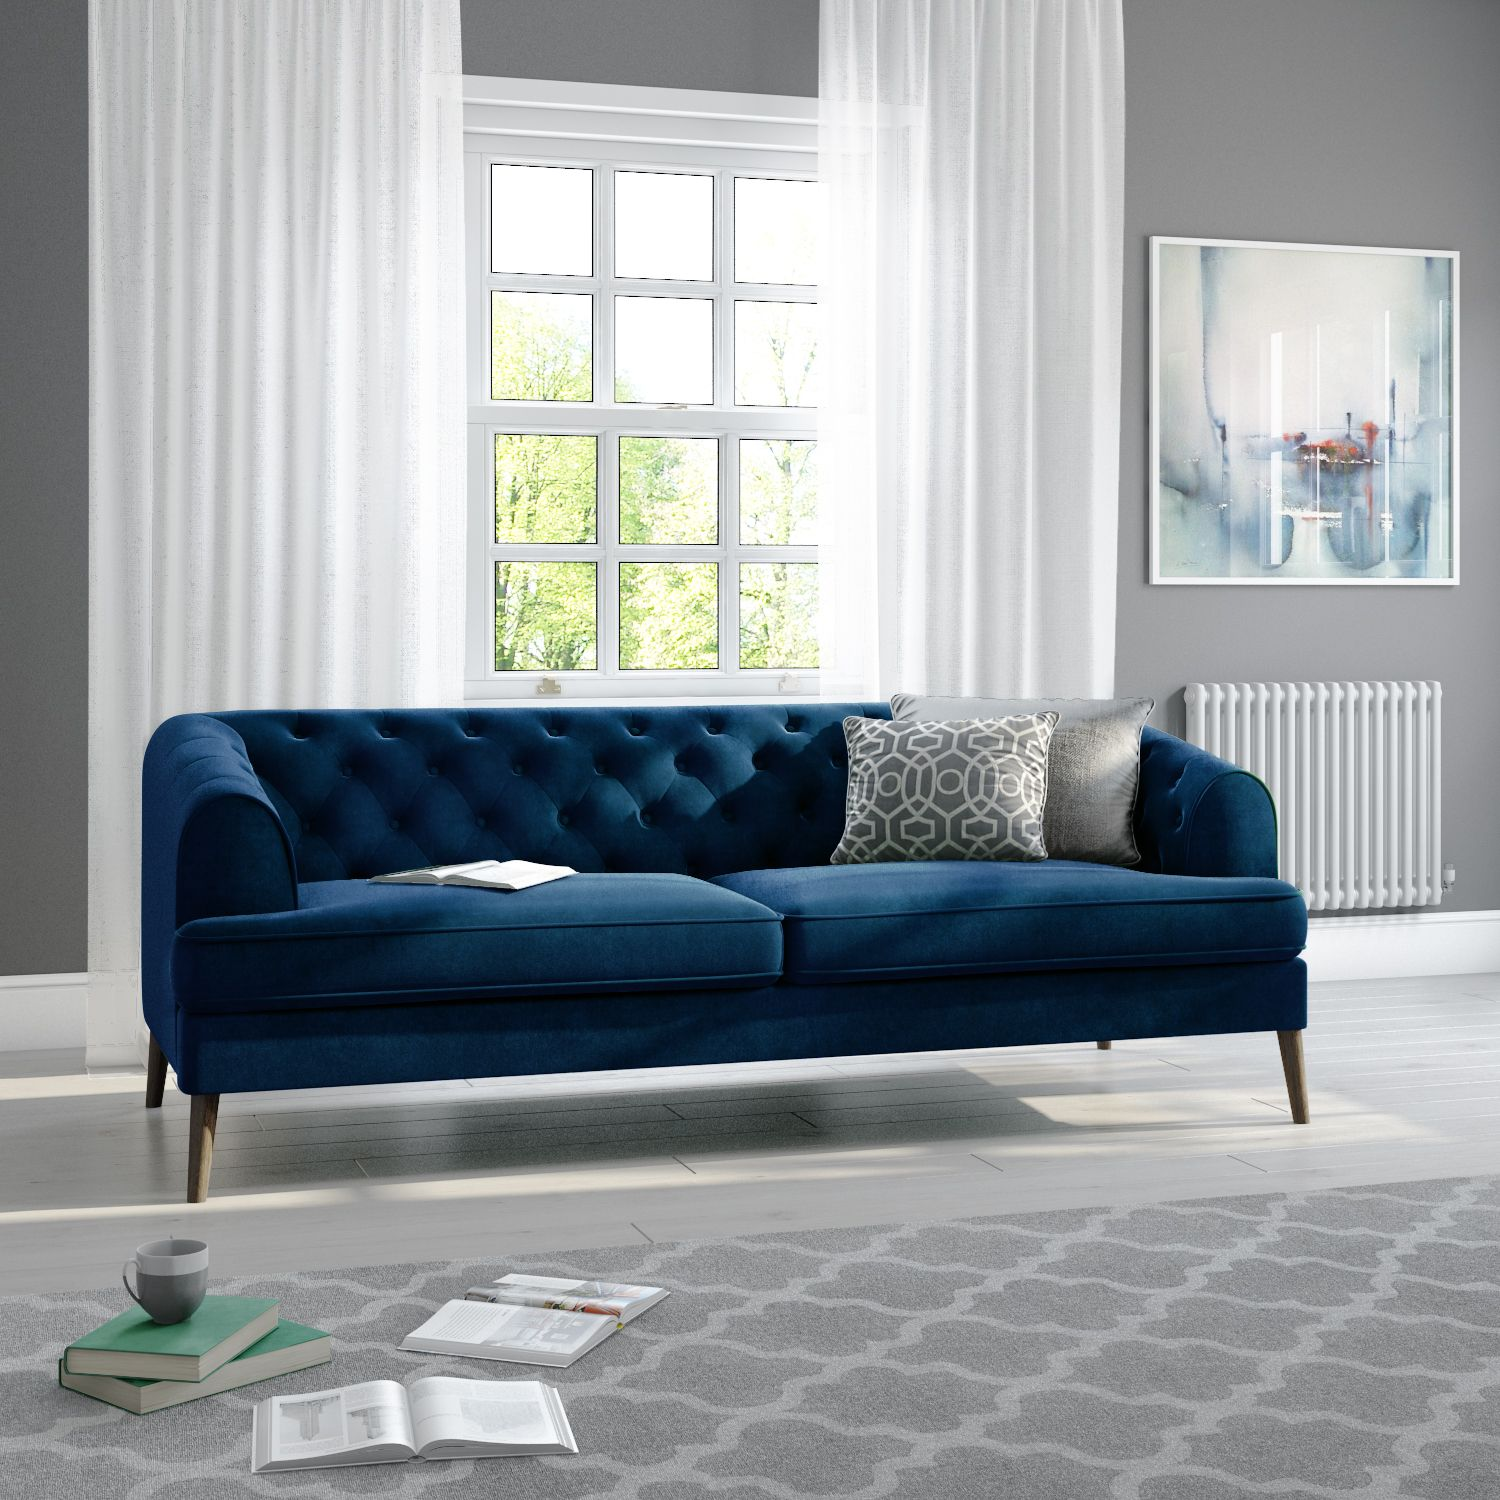 Inez Dark Blue Velvet 3 Seater Chesterfield Sofa Sof035 Green Sofa Living Room Green Velvet Sofa Living Room Green